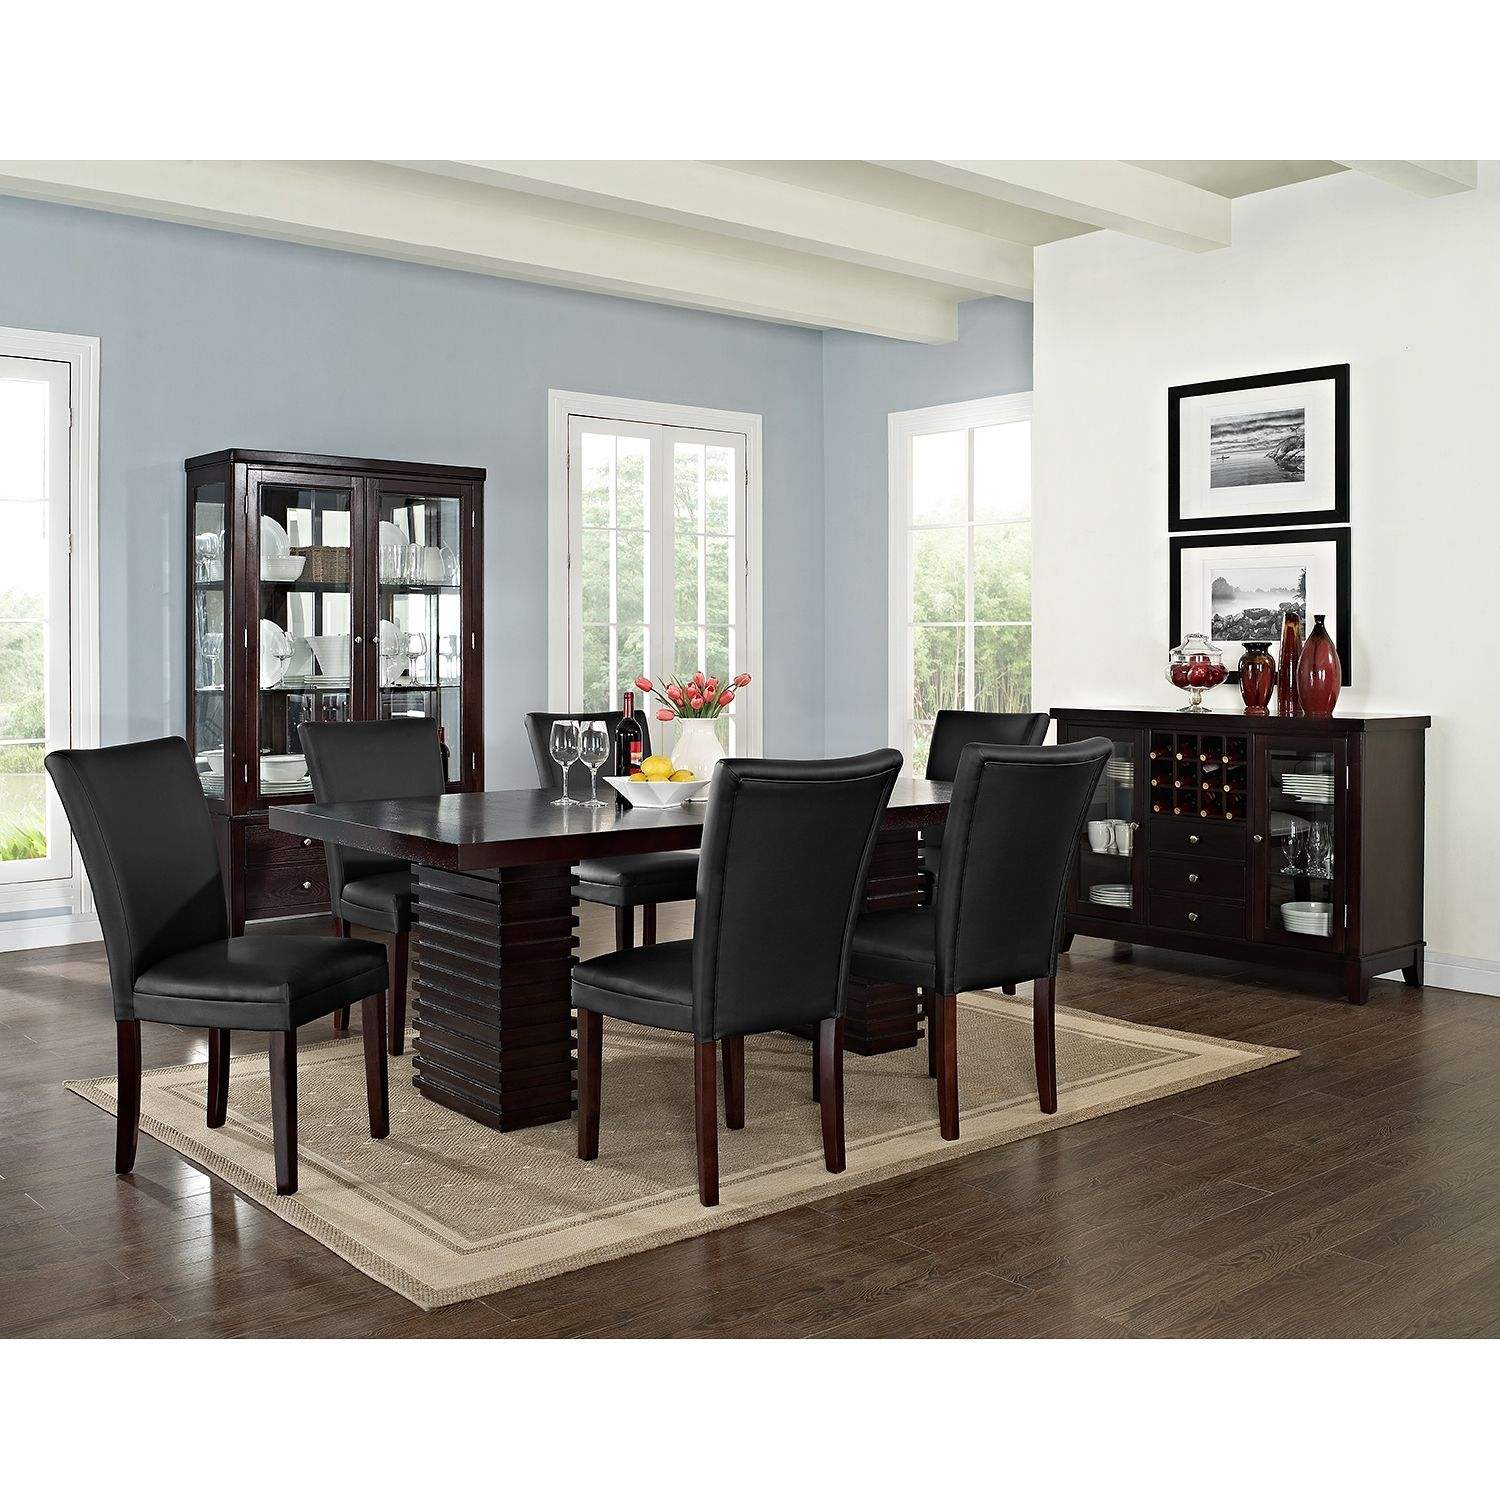 Paragon Caravelle 7 Pc Dining Room Dining Room Furniture Sets Furniture Dining Table Dining Room Furniture